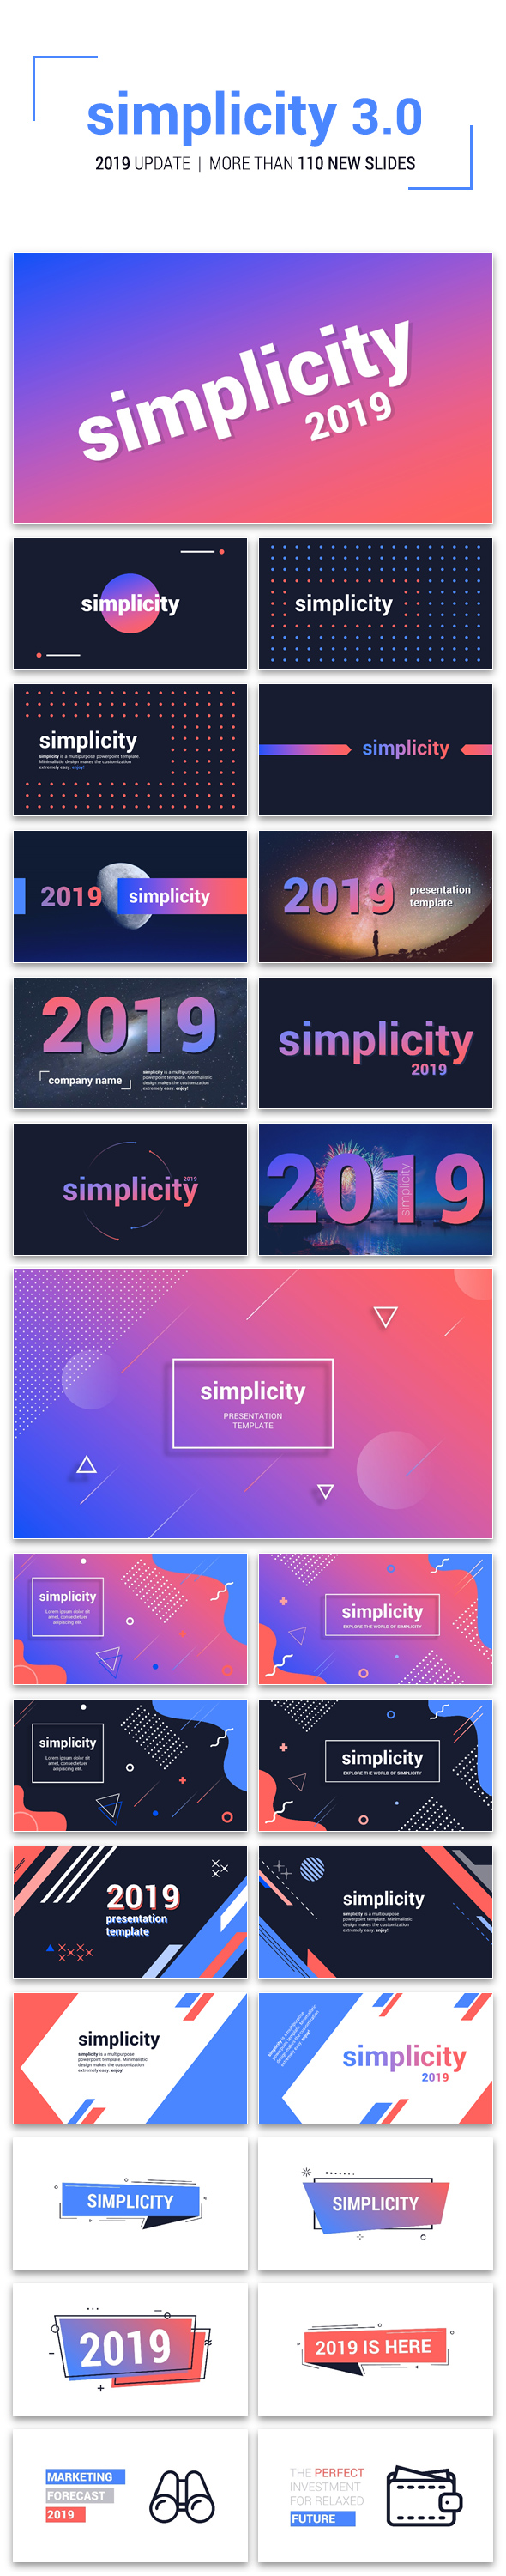 Simplicity 3.1 – Premium and Easy to Edit Template - 6